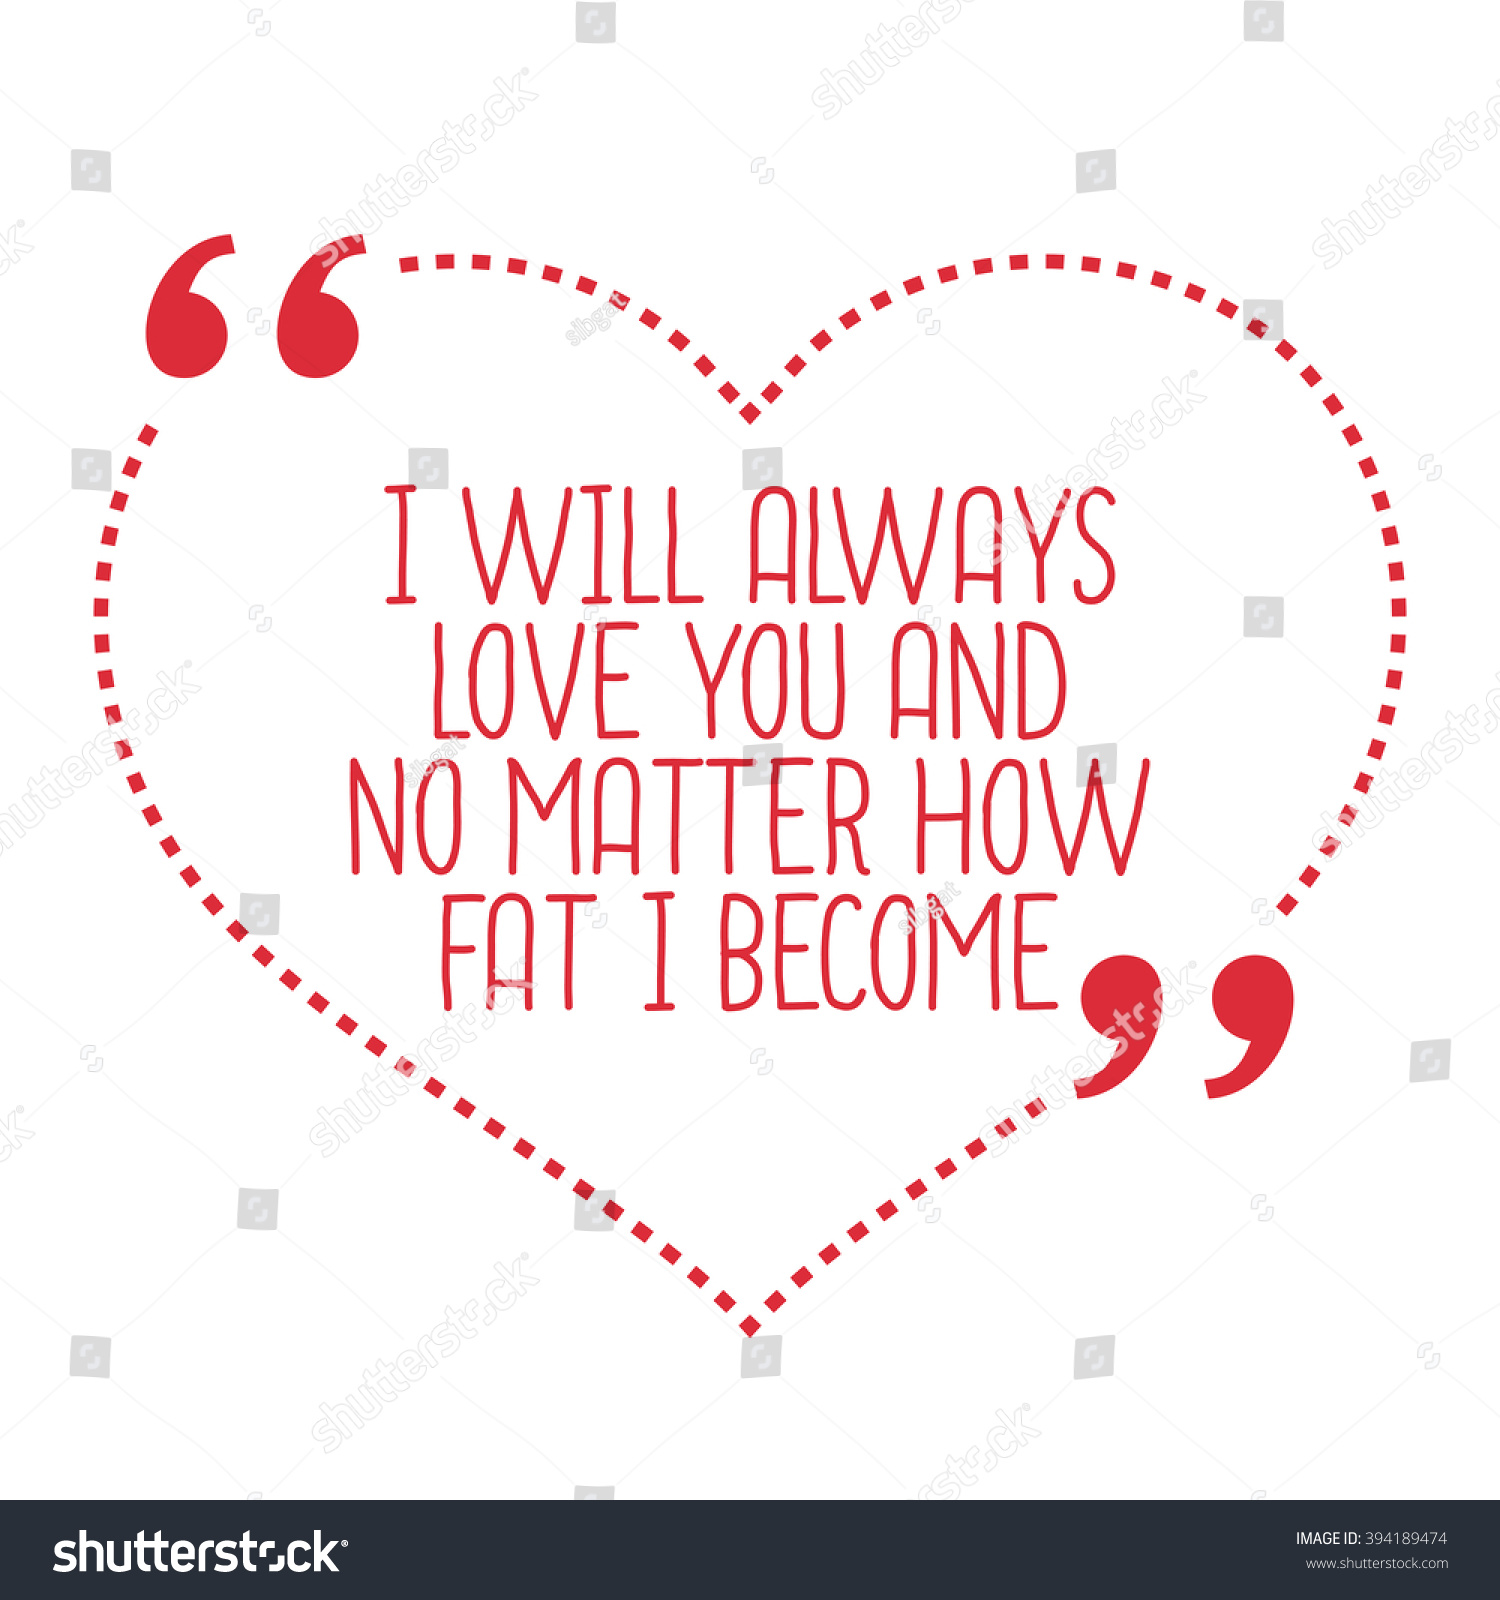 Funny love quote I will always love you and no matter how fat I be e